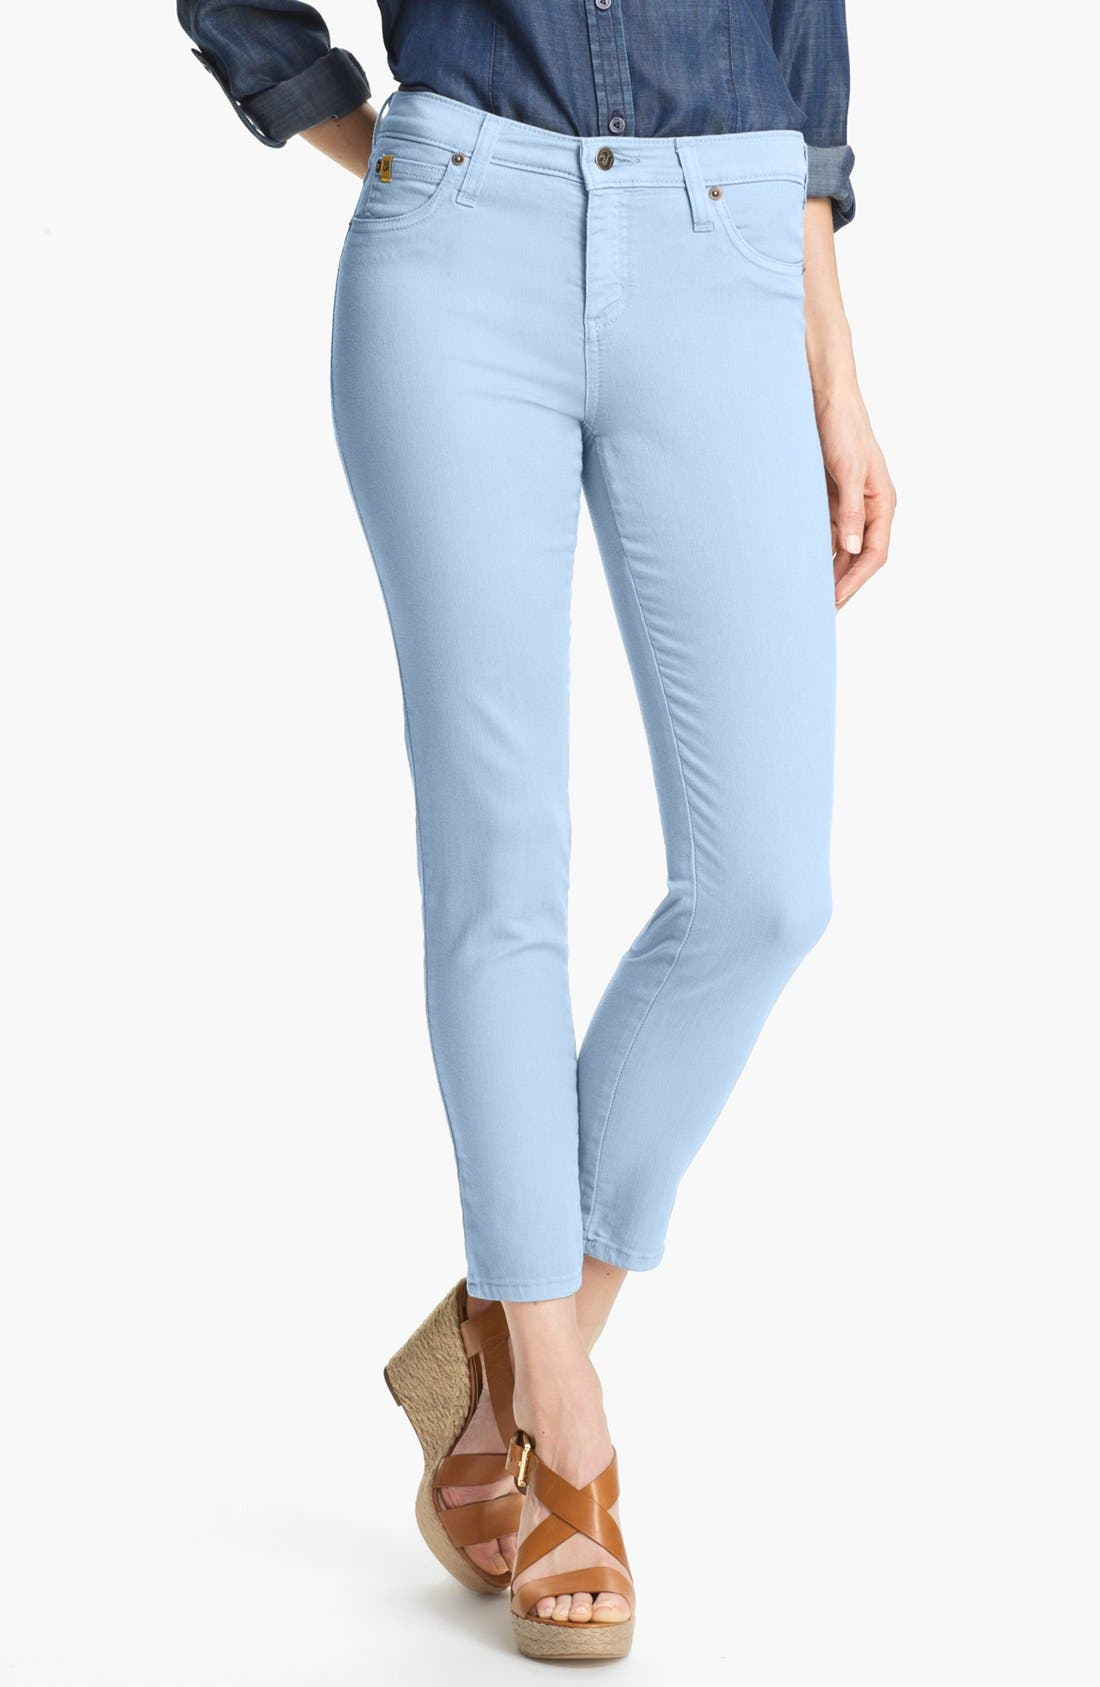 Alternate Image 1 Selected - Second Yoga Jeans Skinny Ankle Jeans